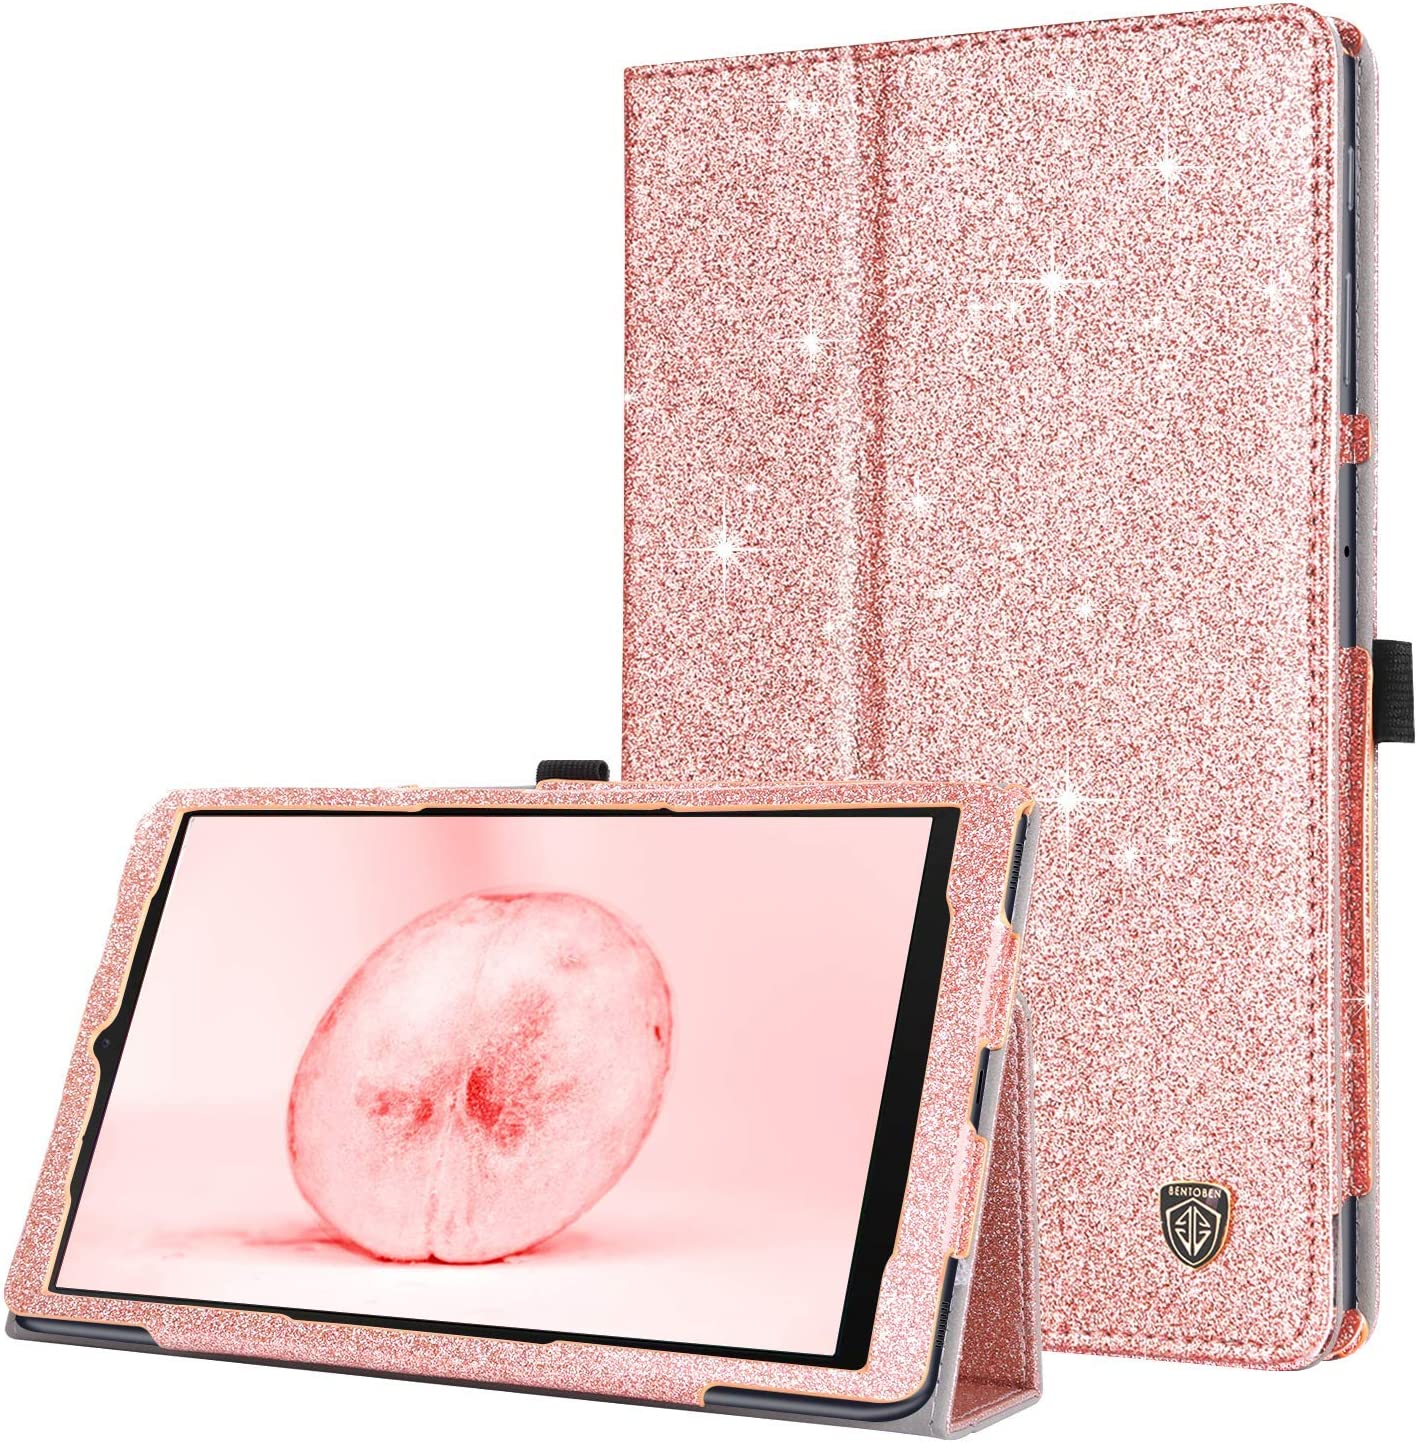 BENTOBEN Galaxy Tab A 10.1 2019 Case,Slim Glitter Shiny Sparkly PU Leather Stand Folding Folio Shockproof Protective Tablet Case for Samsung Galaxy Tab A 10.1 Inch SM-T510/T515 2019 Release, Rose Gold